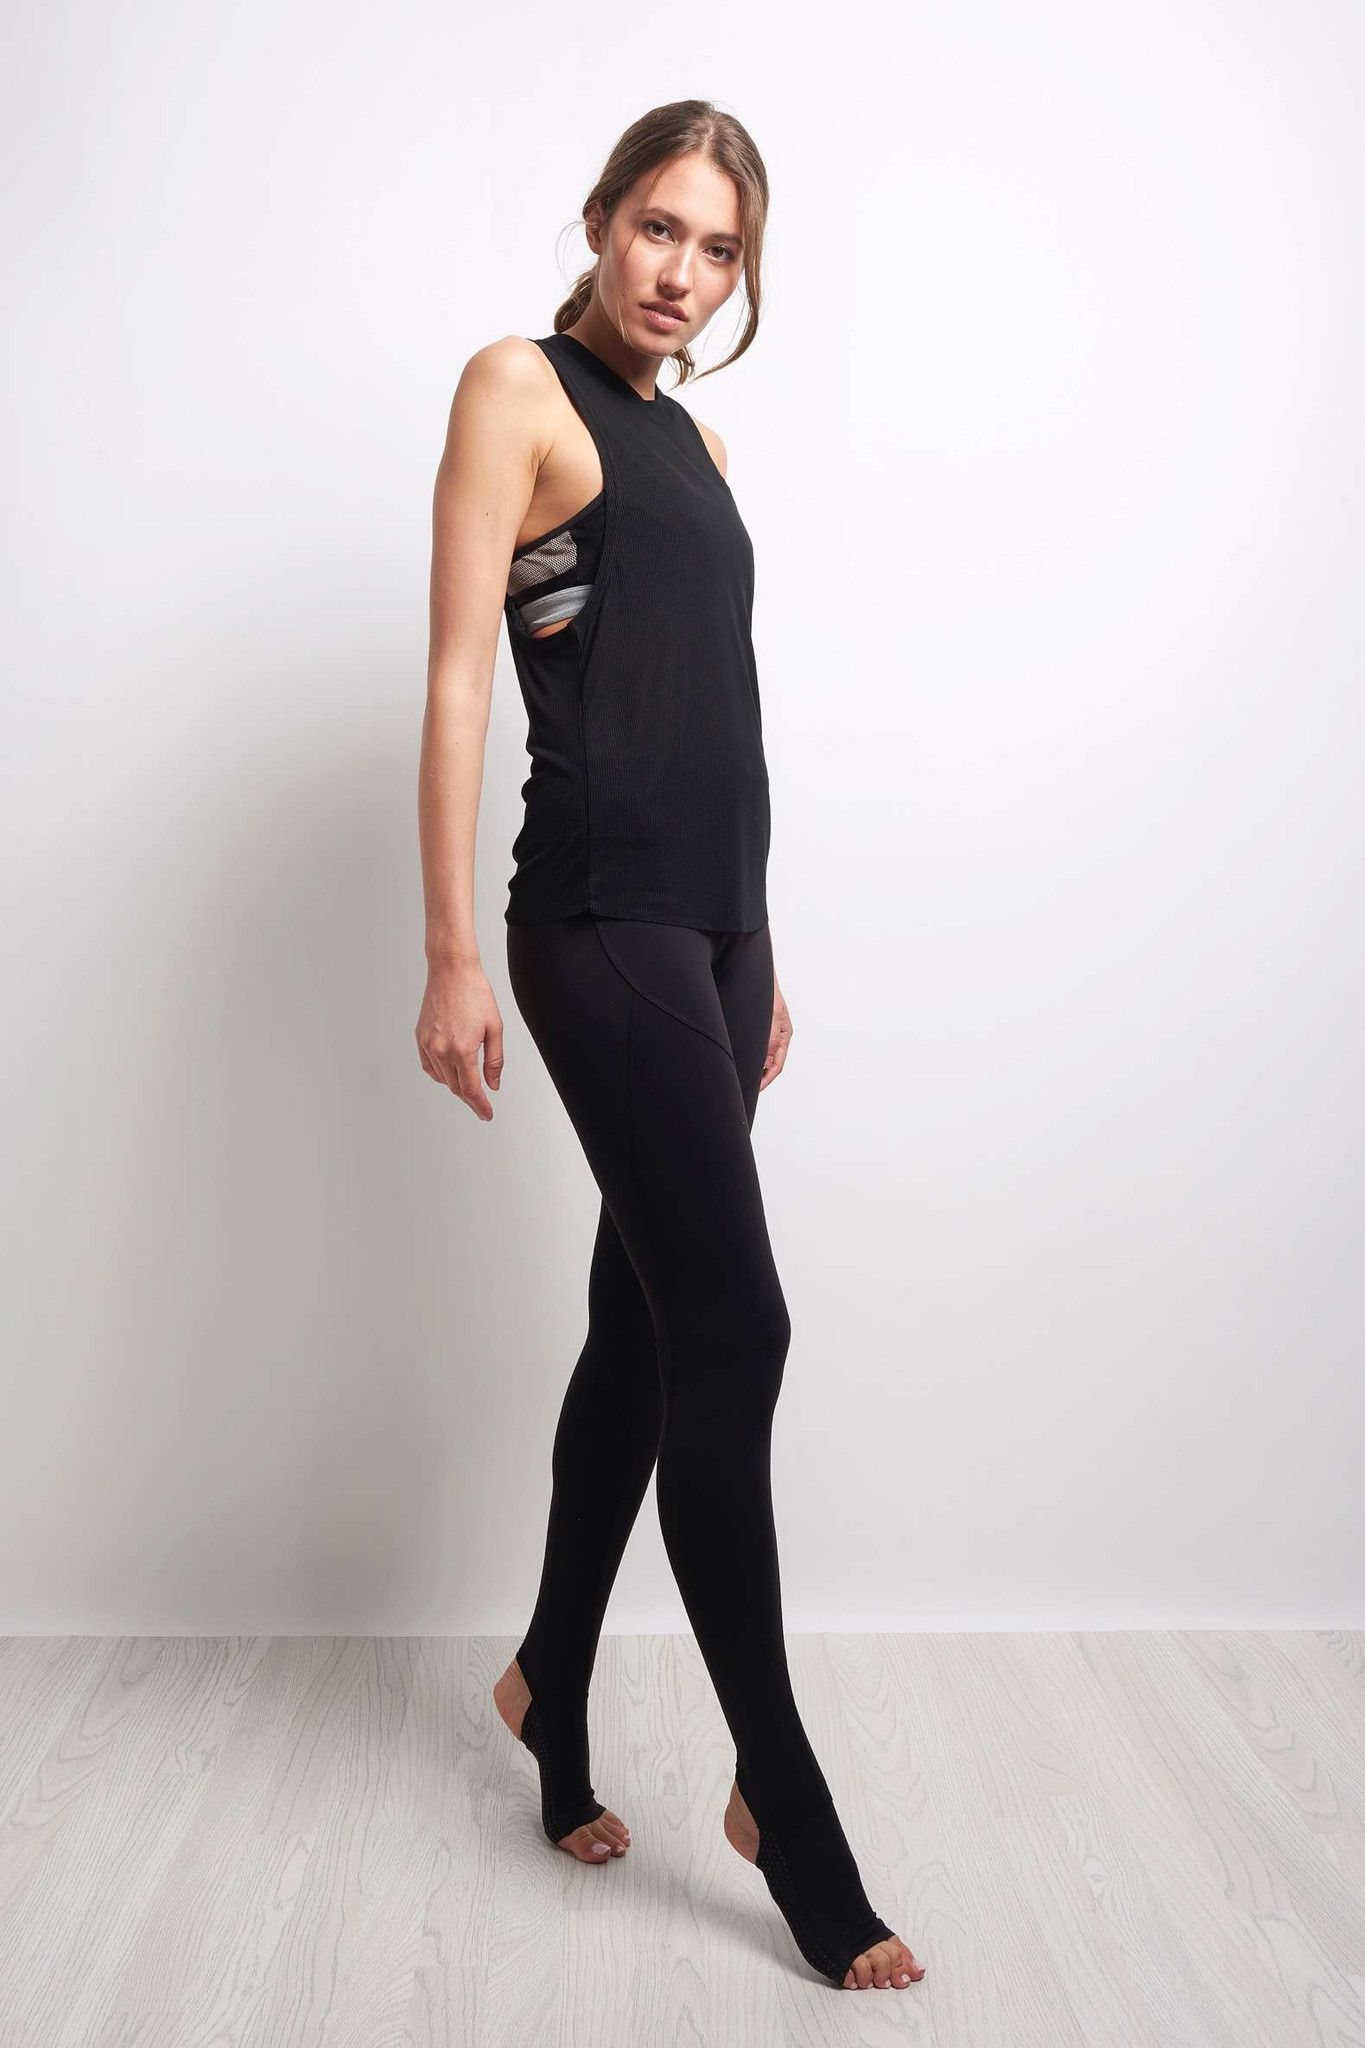 Alo Yoga Heat Wave Tank - Black image 2 - The Sports Edit